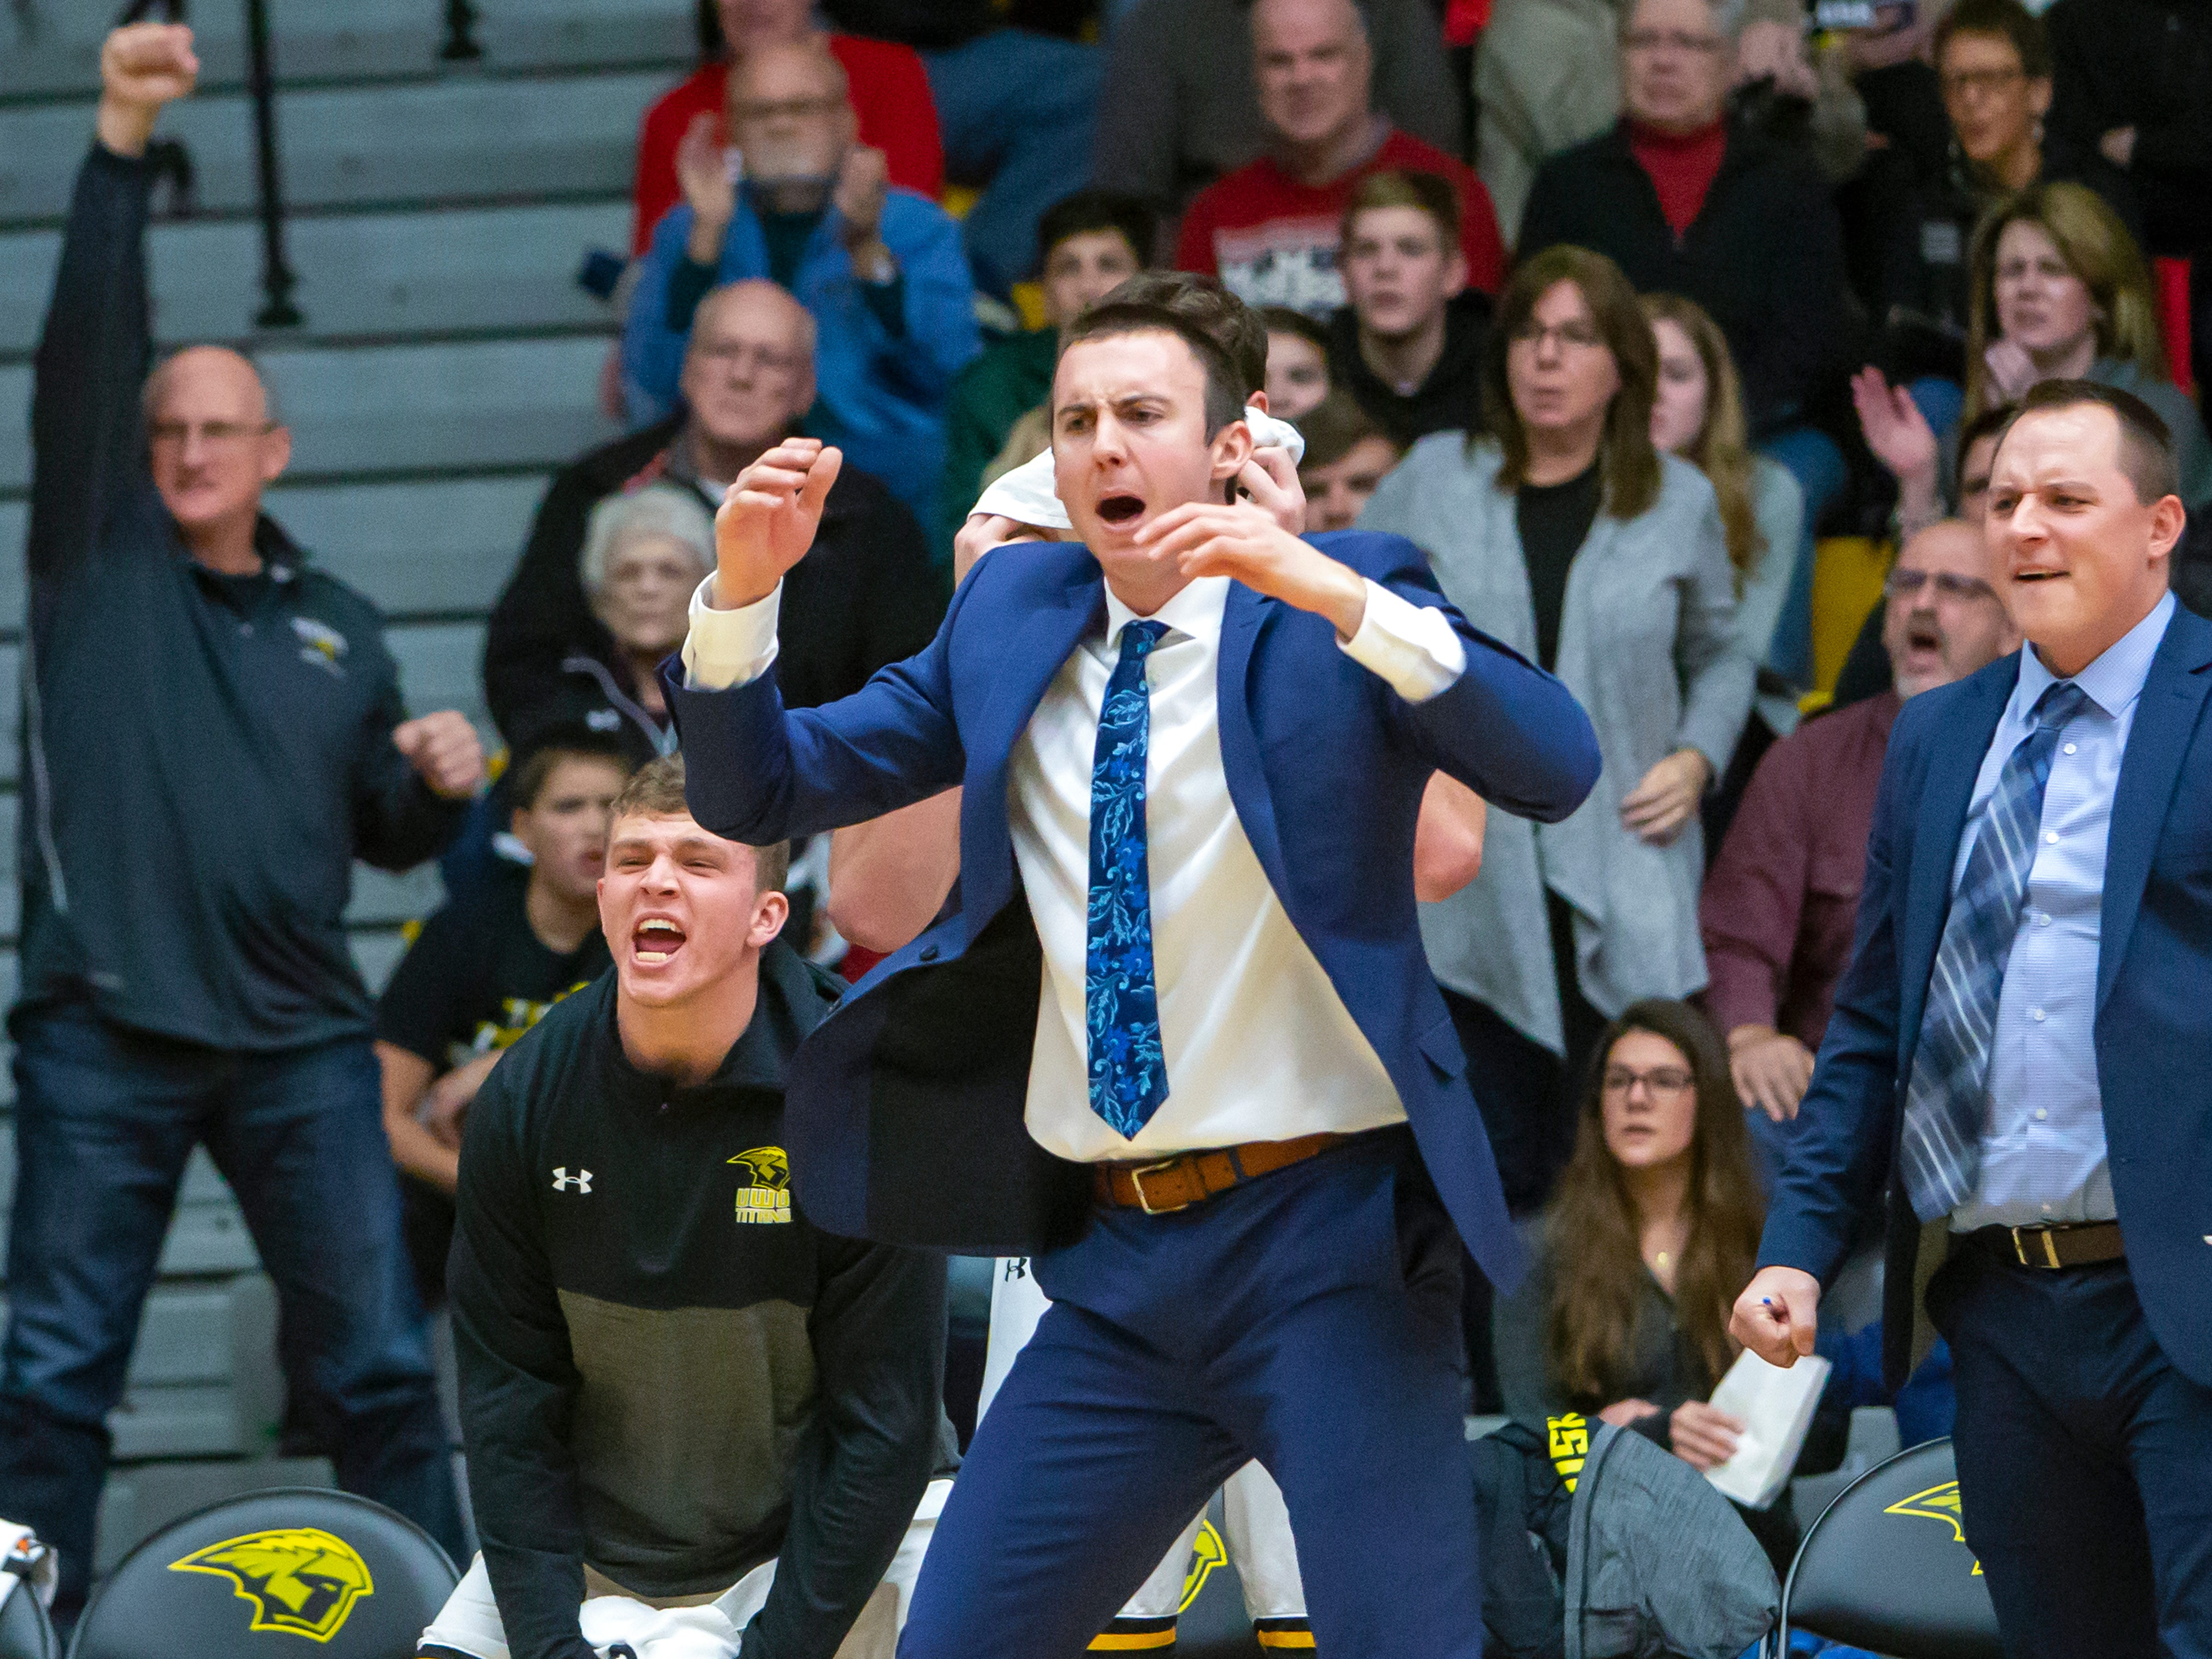 Interim head coach Matt Lewis of UW-Oshkosh reacts to a play on the court at the Kolf Sports Center on Saturday, December 8, 2018.